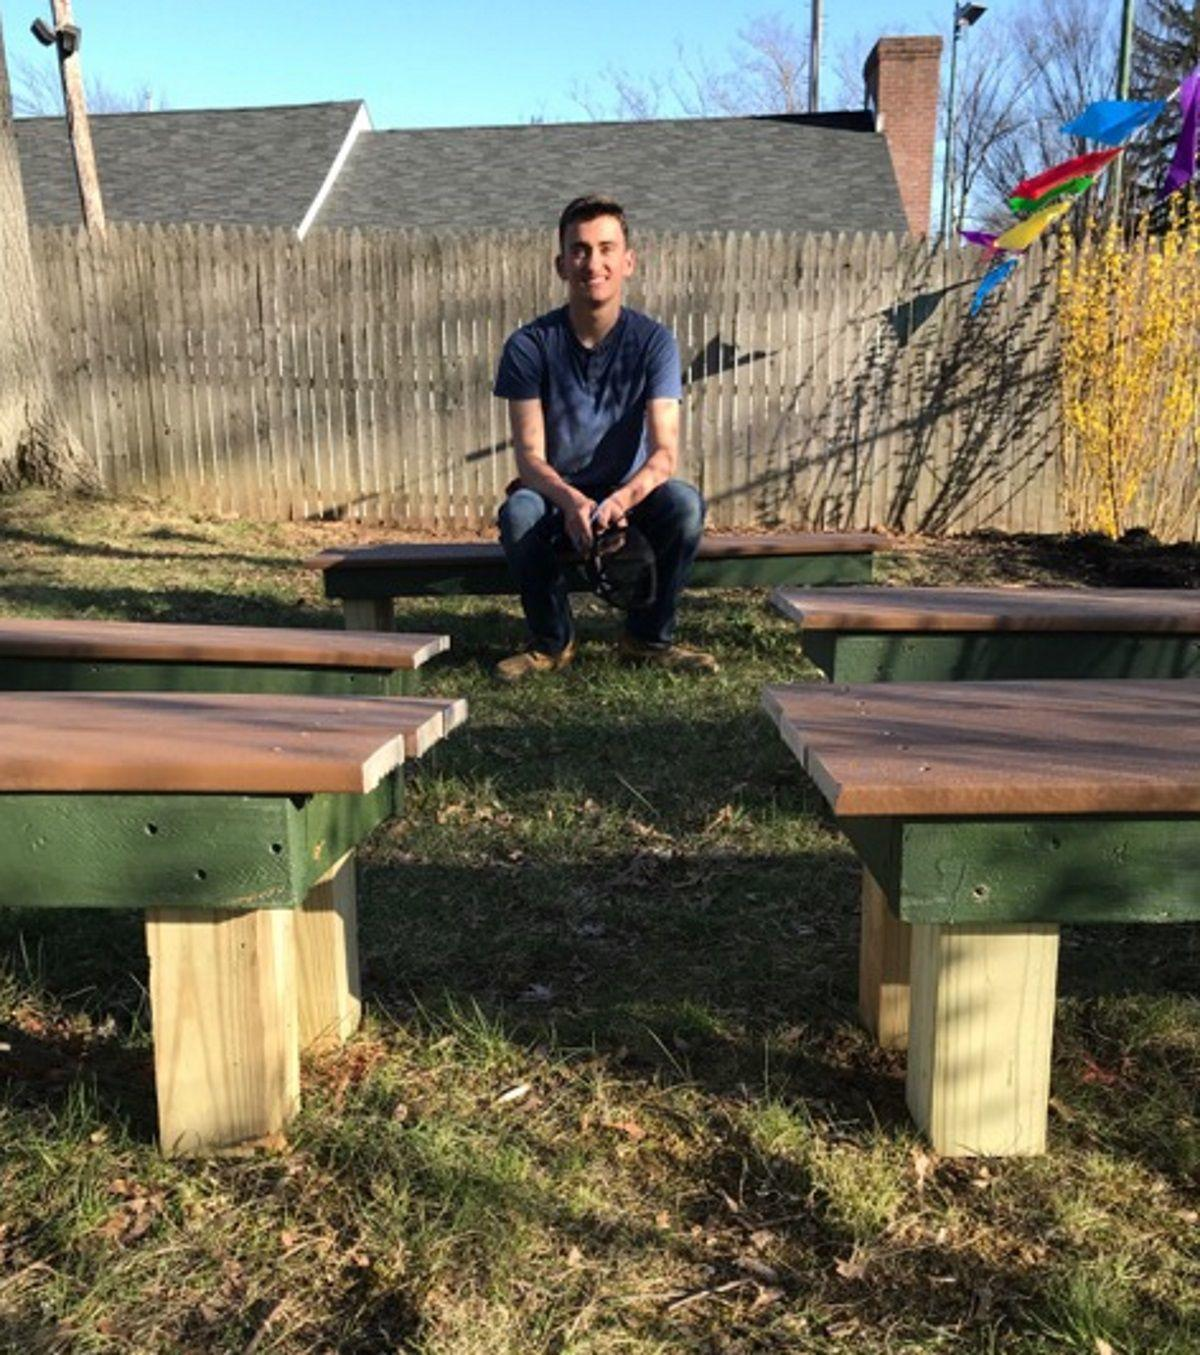 matthew cantale of mendham an eagle scout candidate is with the outdoor learning center he designed and built for the mendham co operative nursery school - Mendham Garden Center